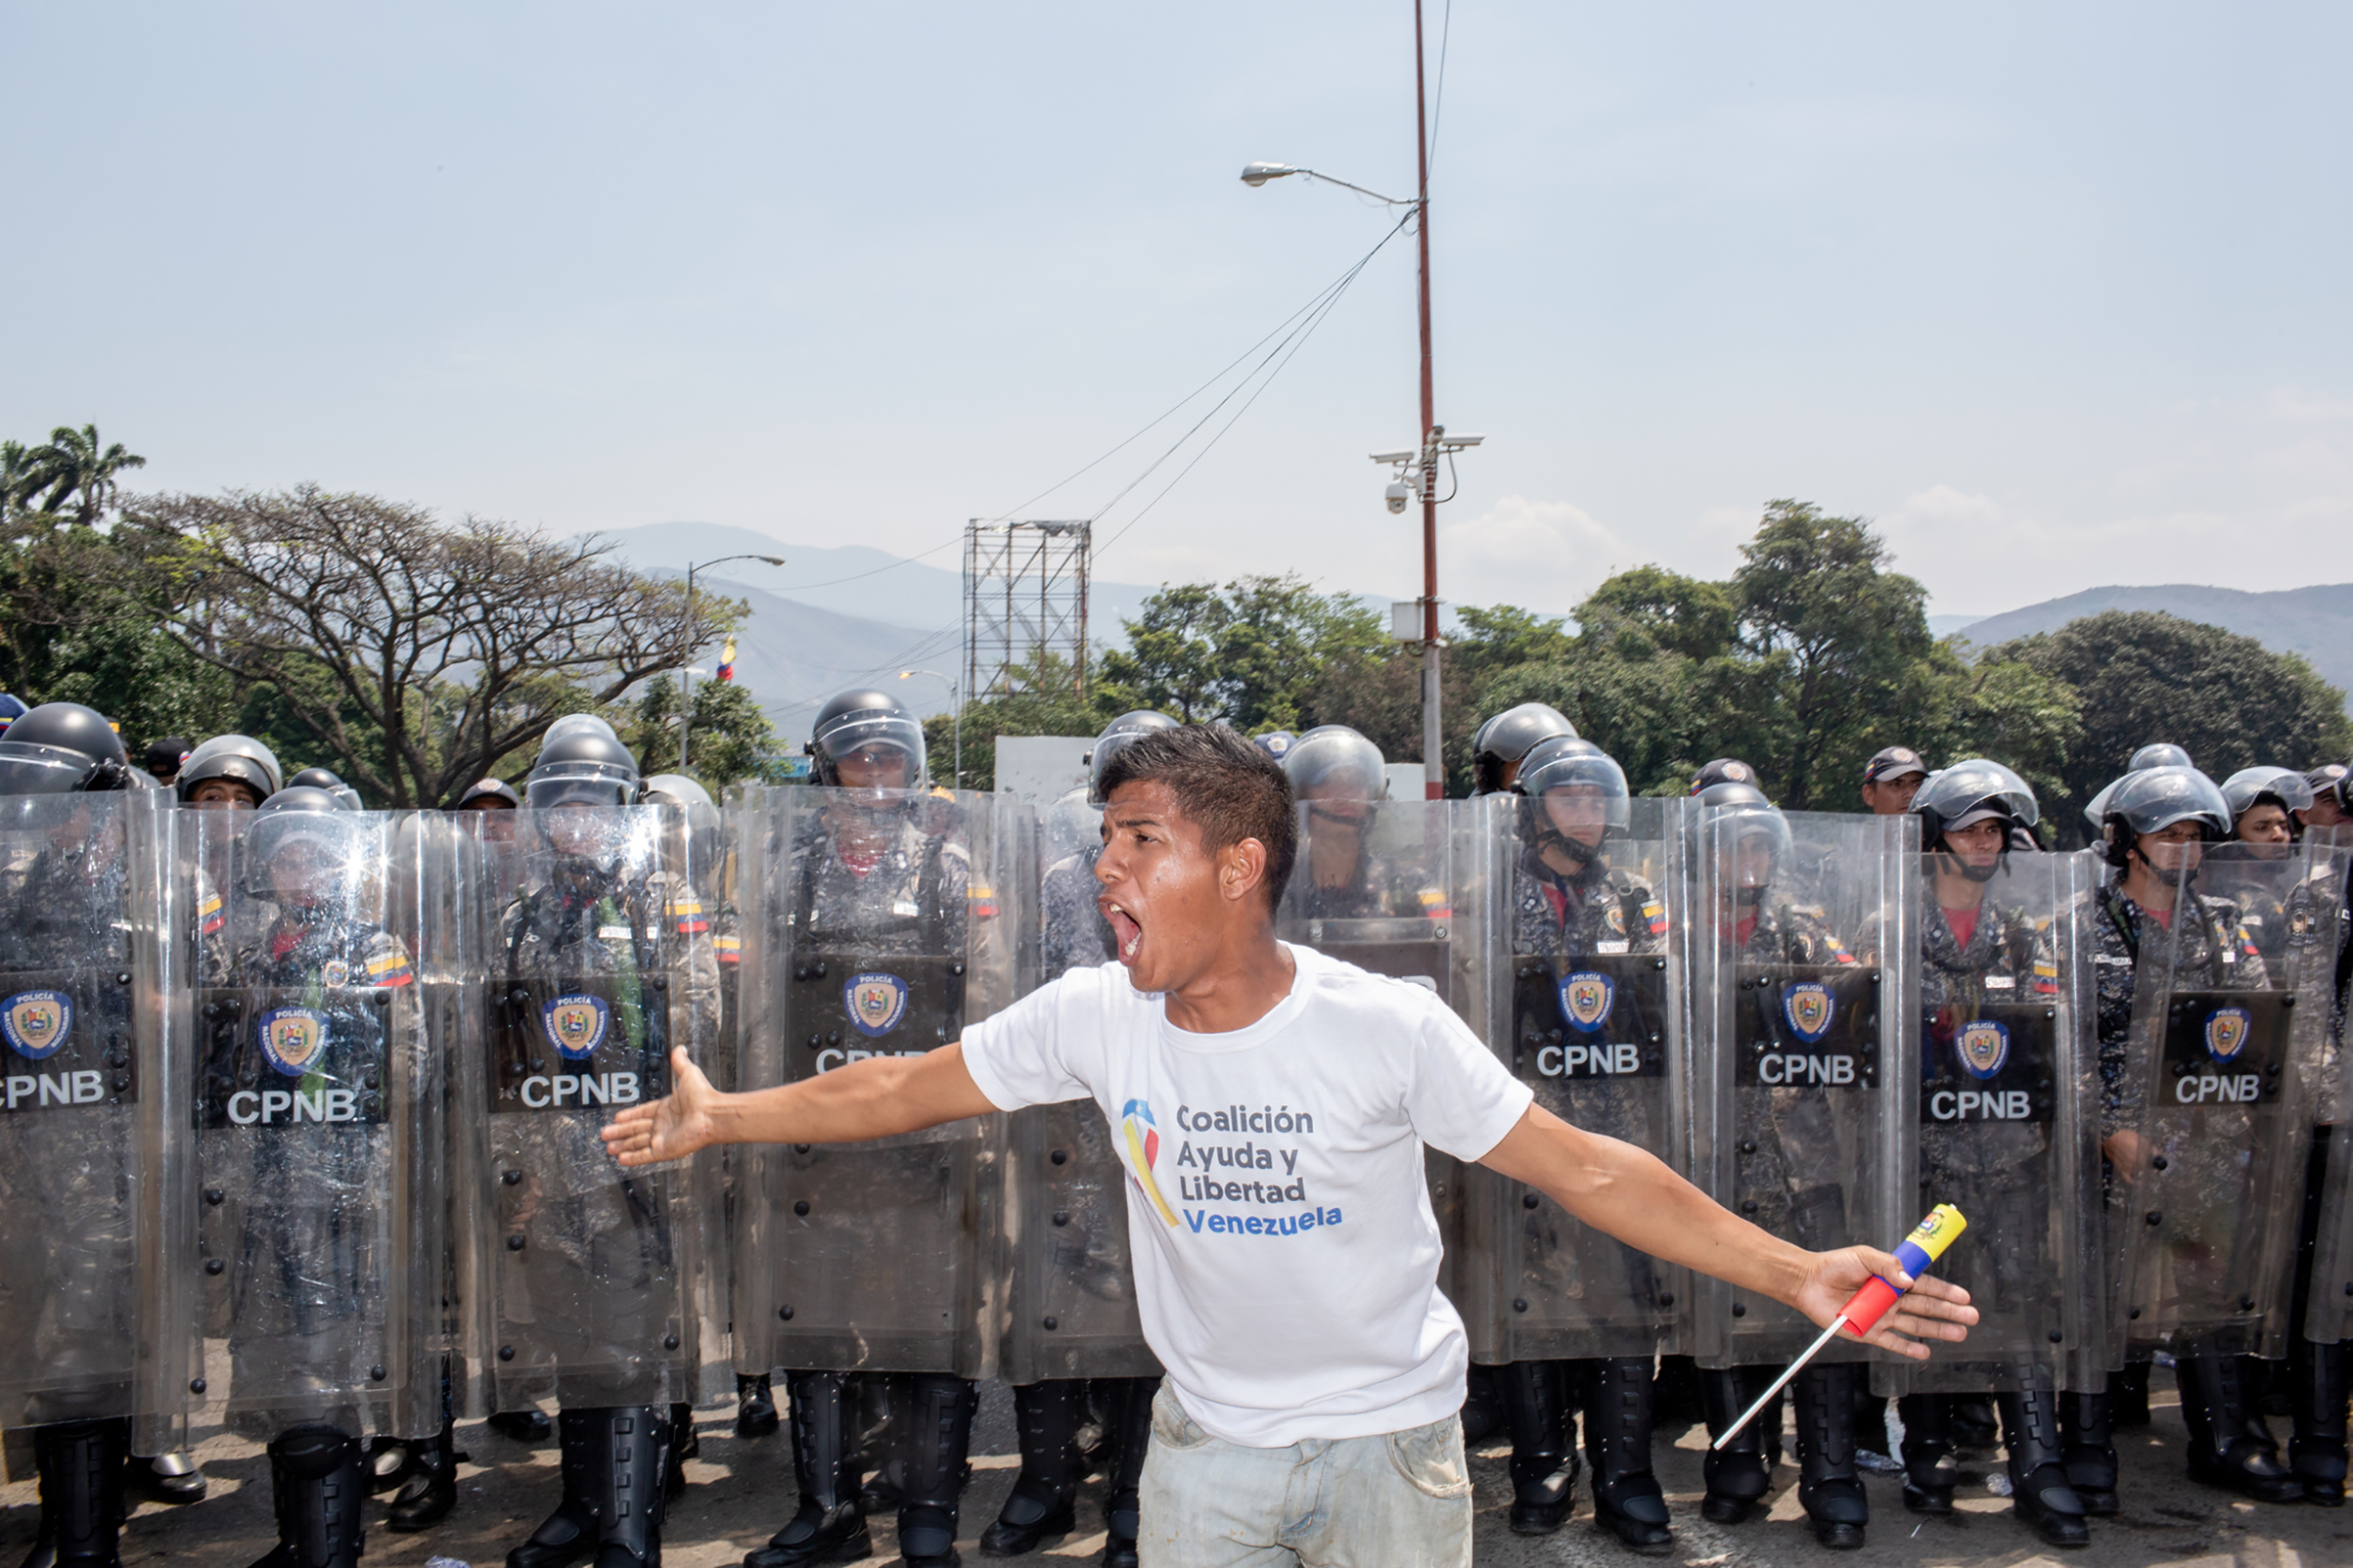 A demonstrator yells in front of Venezuelan national police officers before a clash on the bridge.